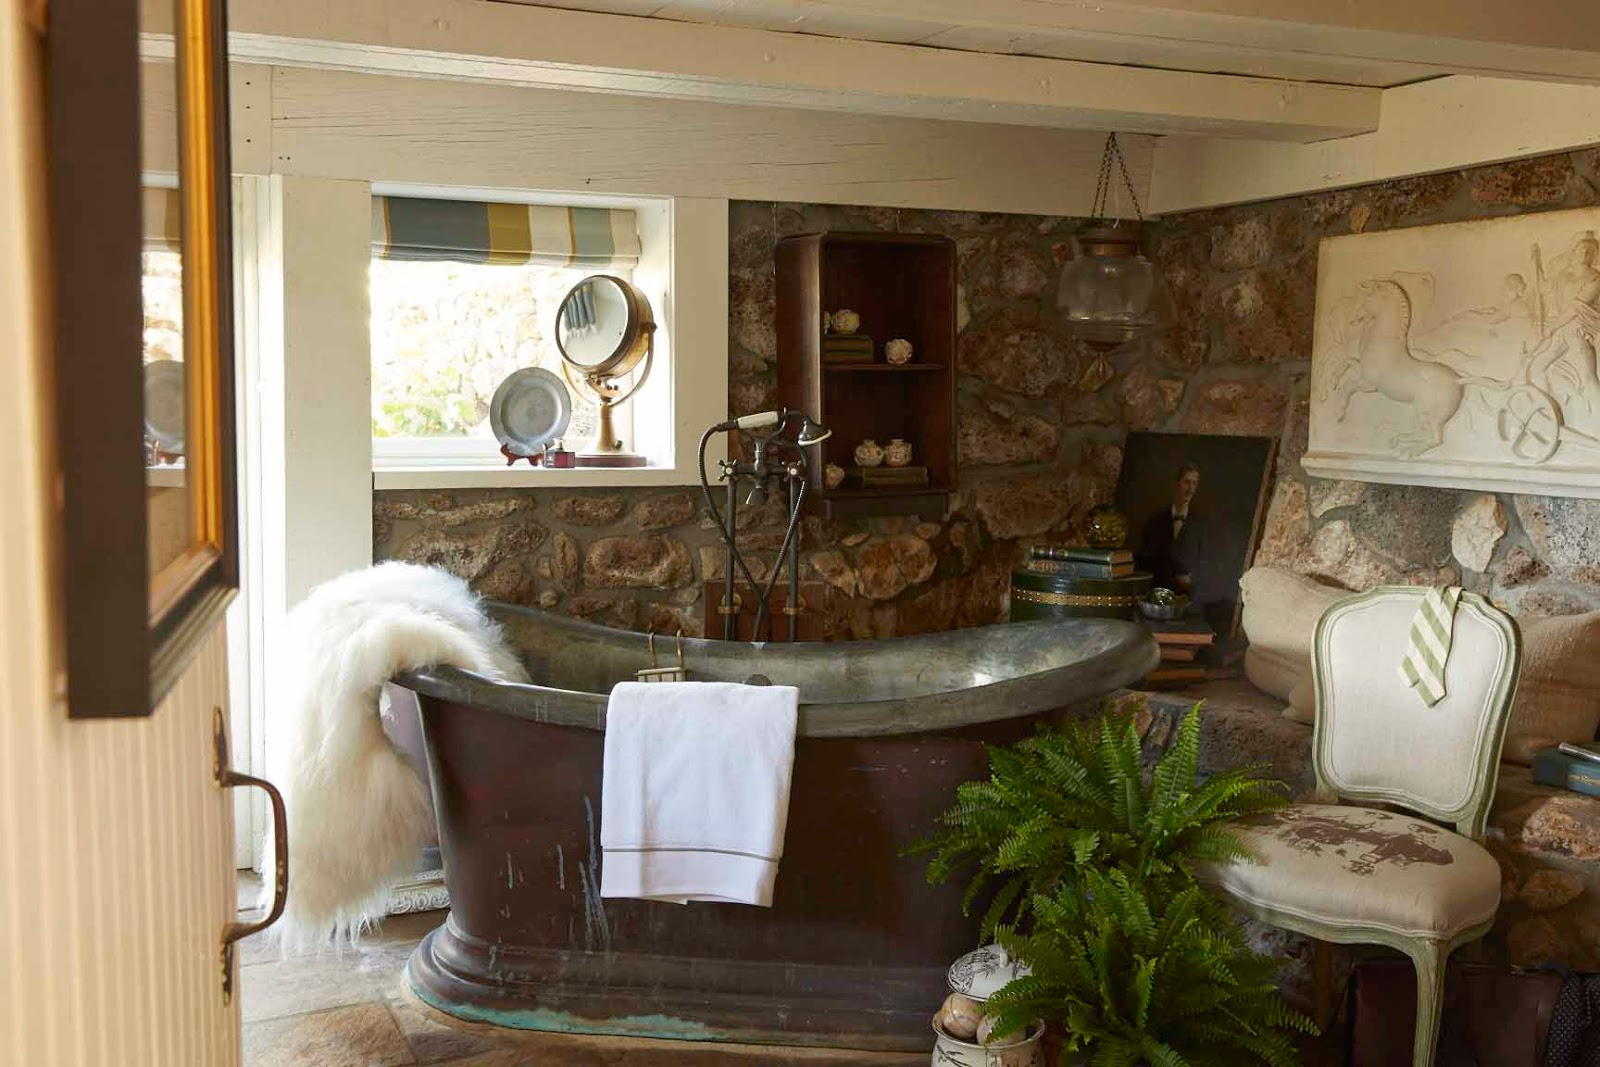 Styled In The Same Strait Up English Colonial Manner This Bath Continues The Design Preserving As Much As Possible What Was Left Behind By The Masters